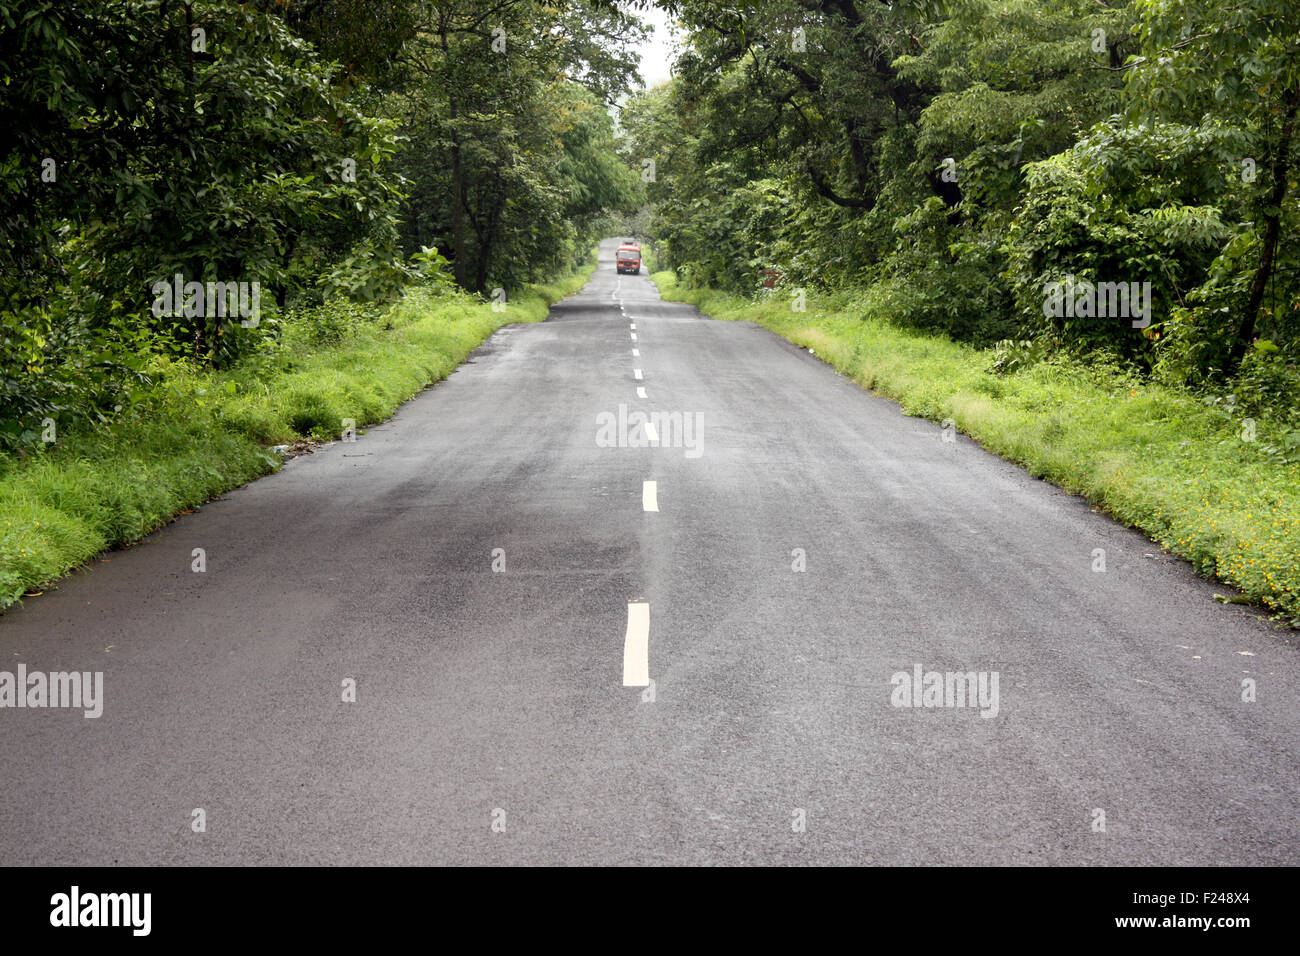 A lone state transport bus traveling through a road in the beautiful jungles of Indi - Stock Image